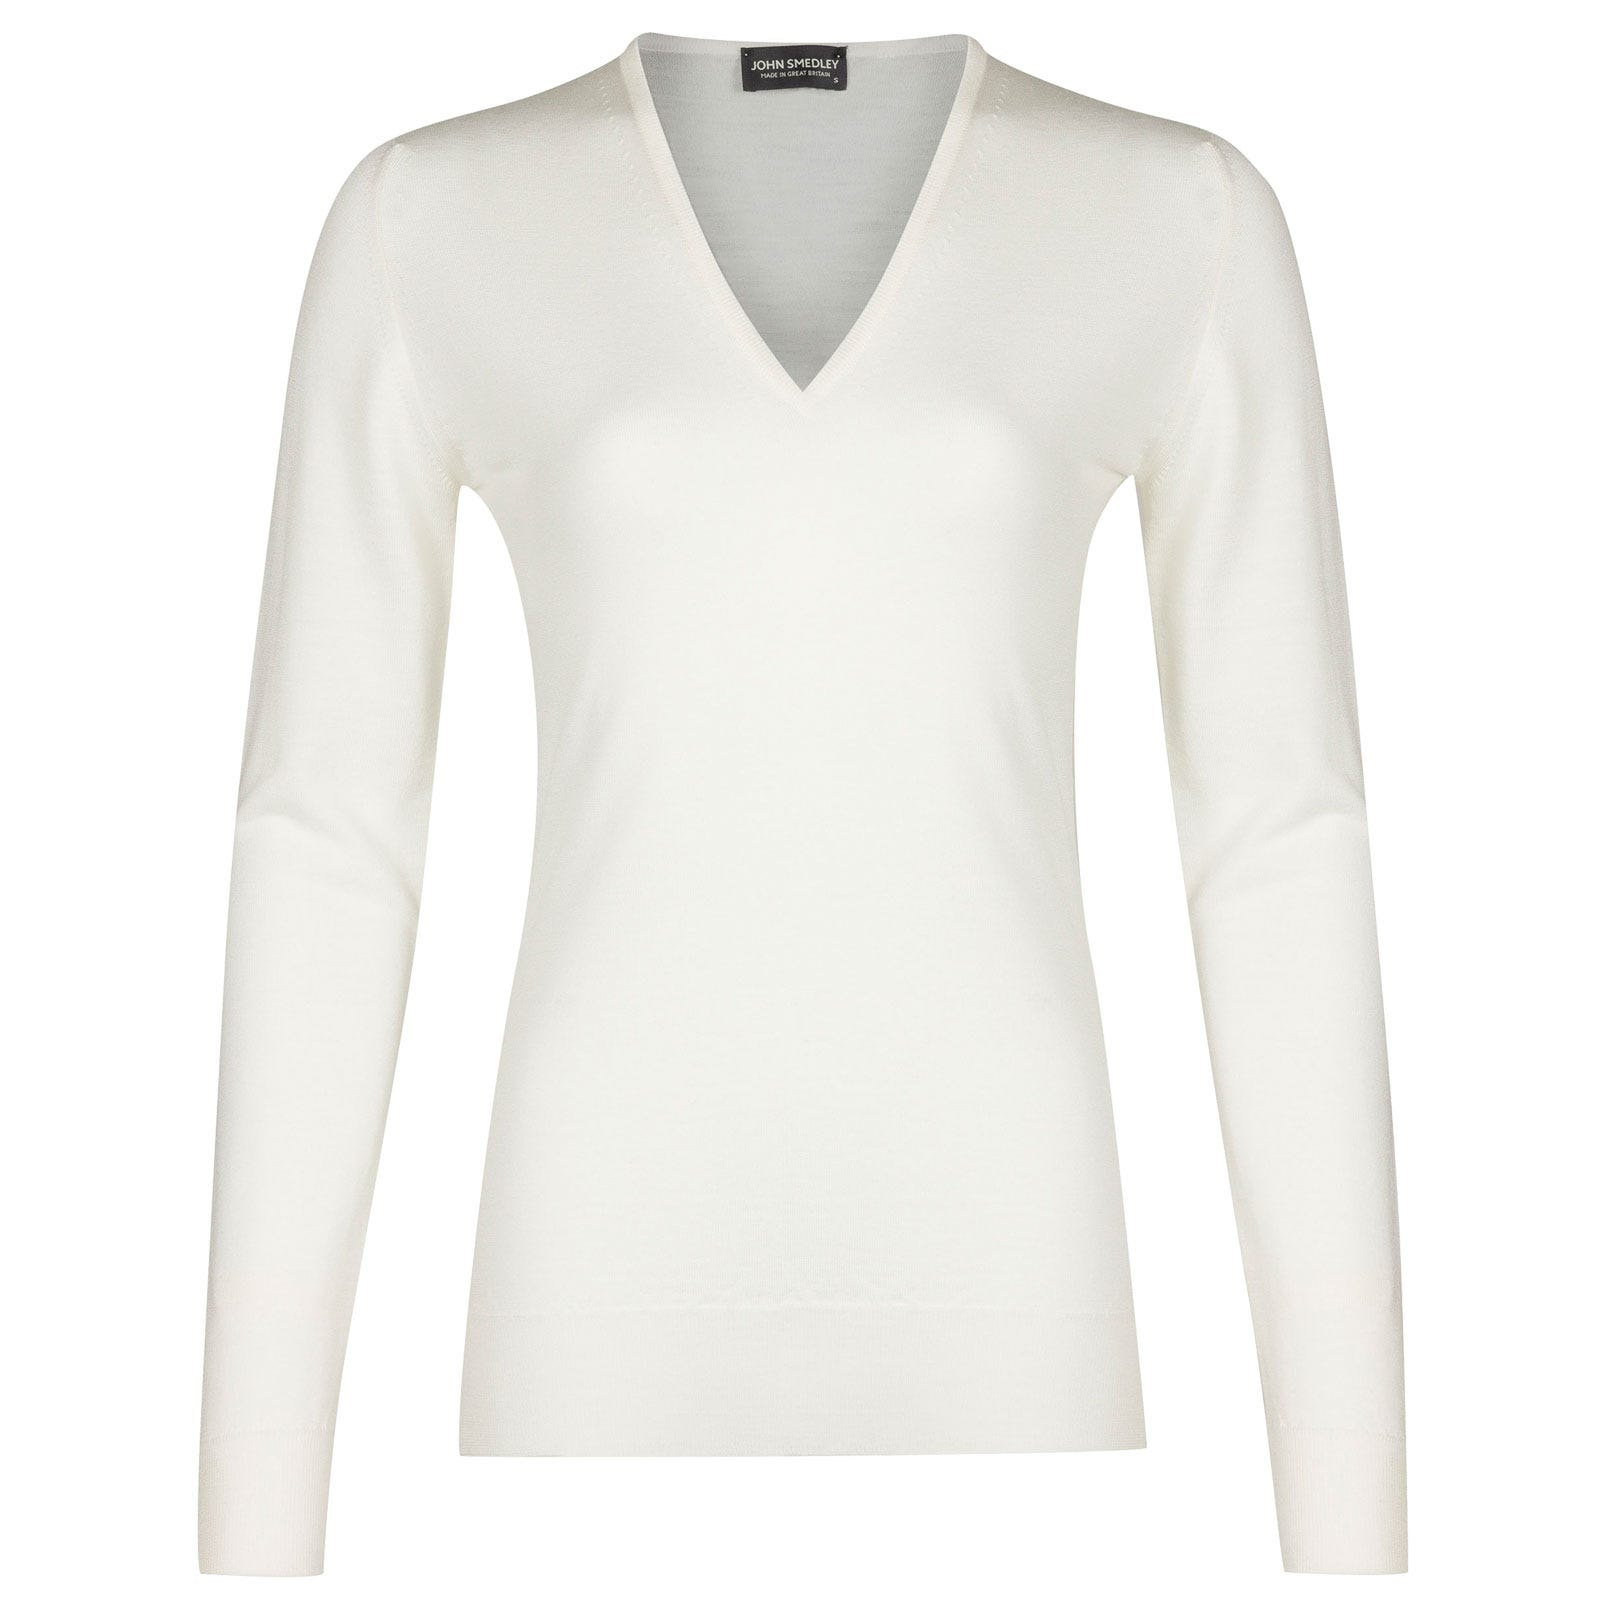 John Smedley Orchid Merino Wool Sweater in Snow White-L